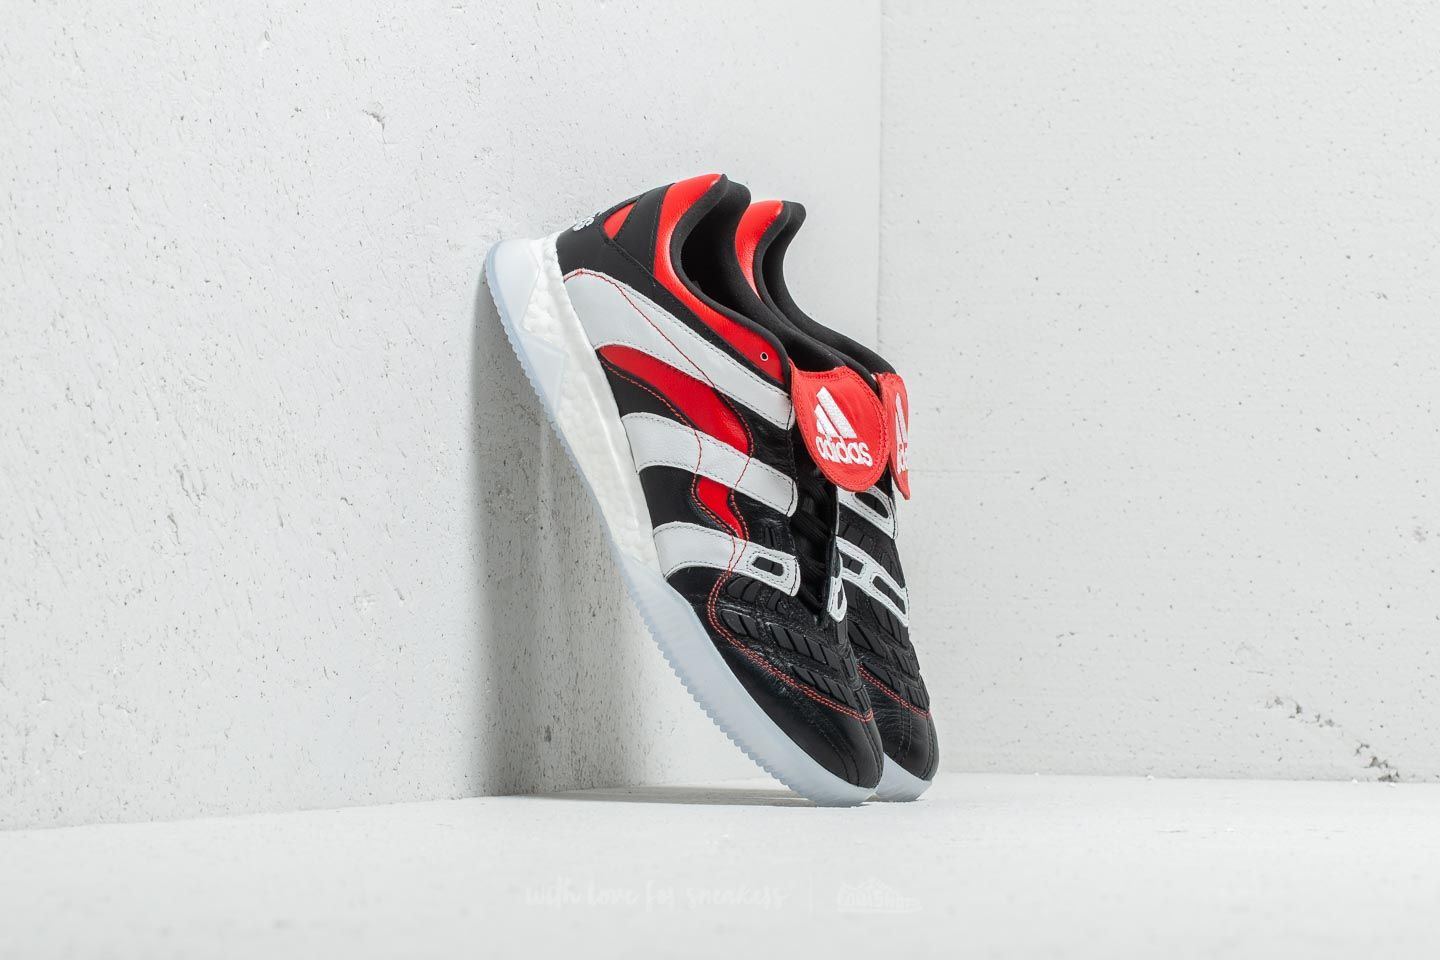 525e76ad9d29 adidas Predator Accelerator TR Core Black  Ftw White  Red at a great price  168